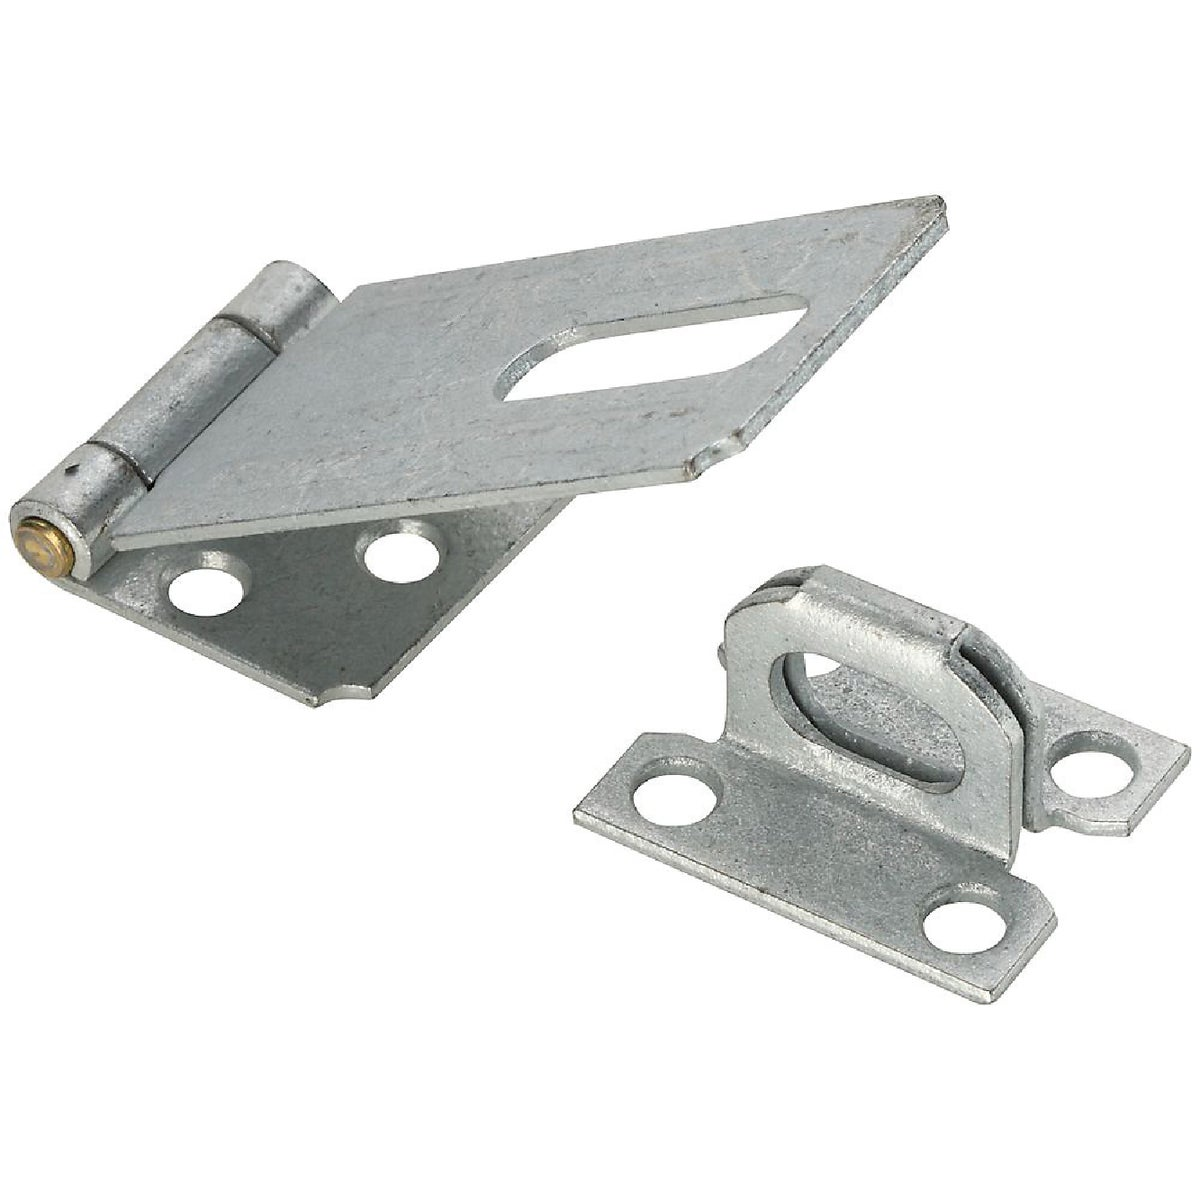 "3-1/4"" GALV SAFETY HASP"